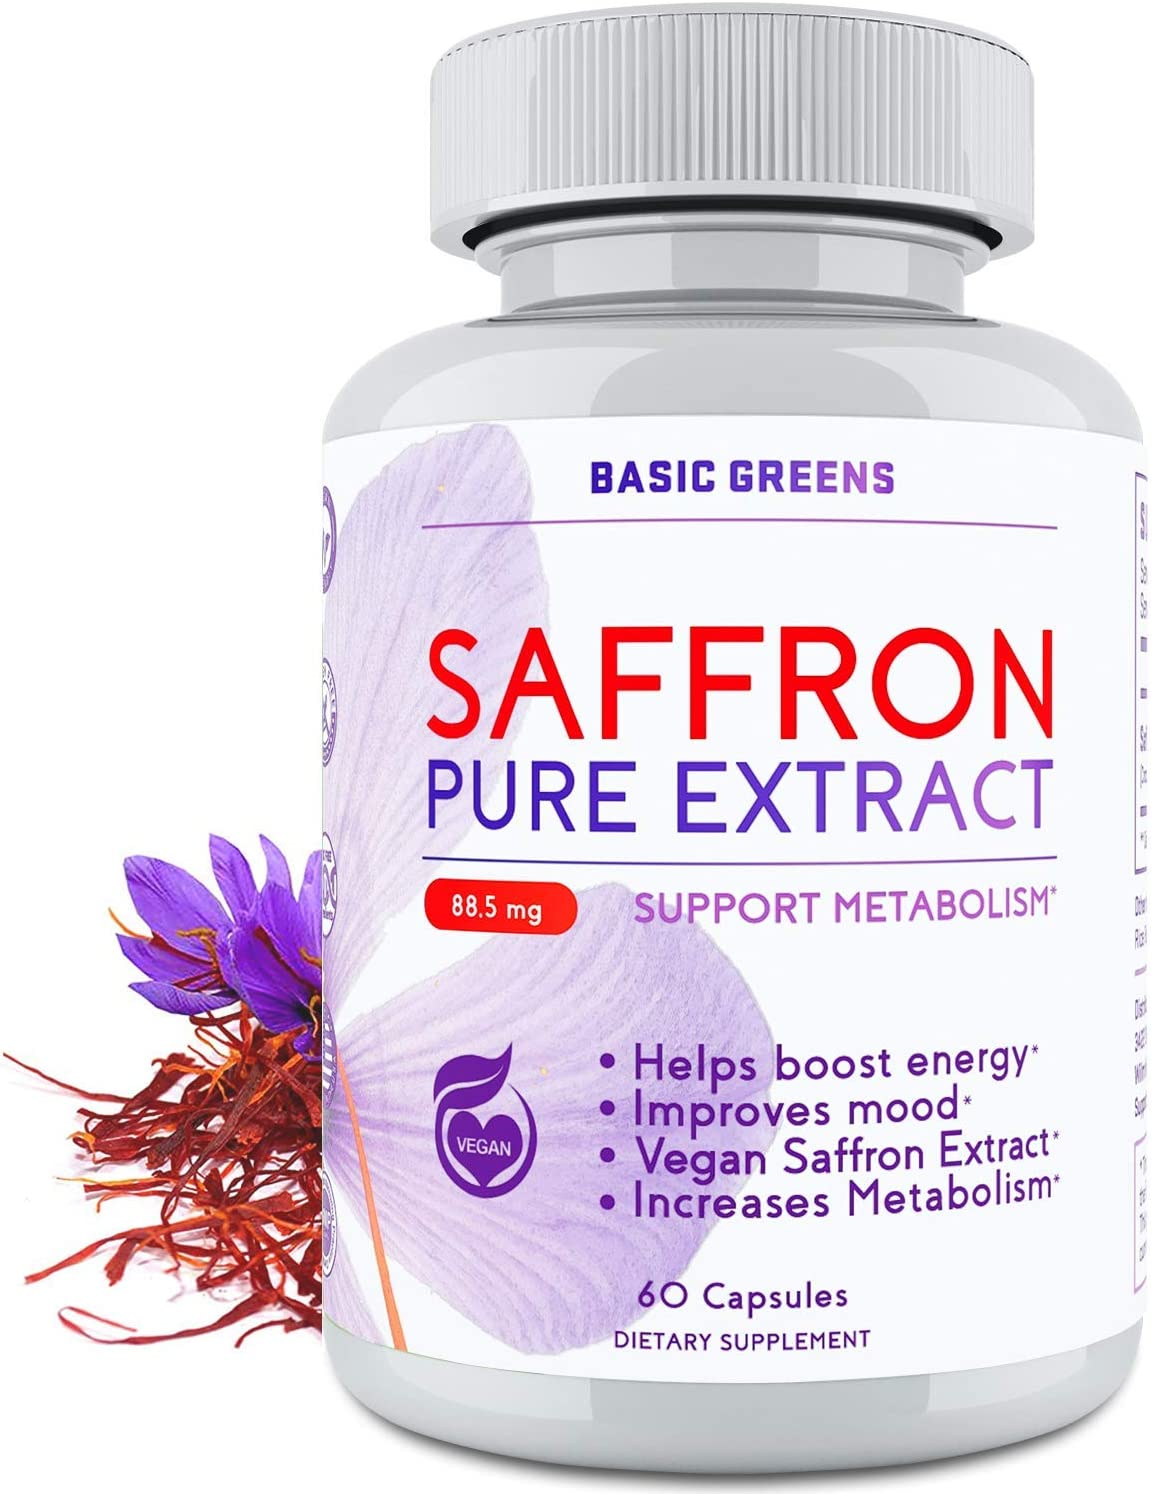 Appetite Suppressant Saffron Supplement and Weight Loss for Women - Saffron Extract Supplement 88.5mg - Appetite Control - Vegan Saffron Extract (60 Capsules) by BASIC GREENS: Health & Personal Care